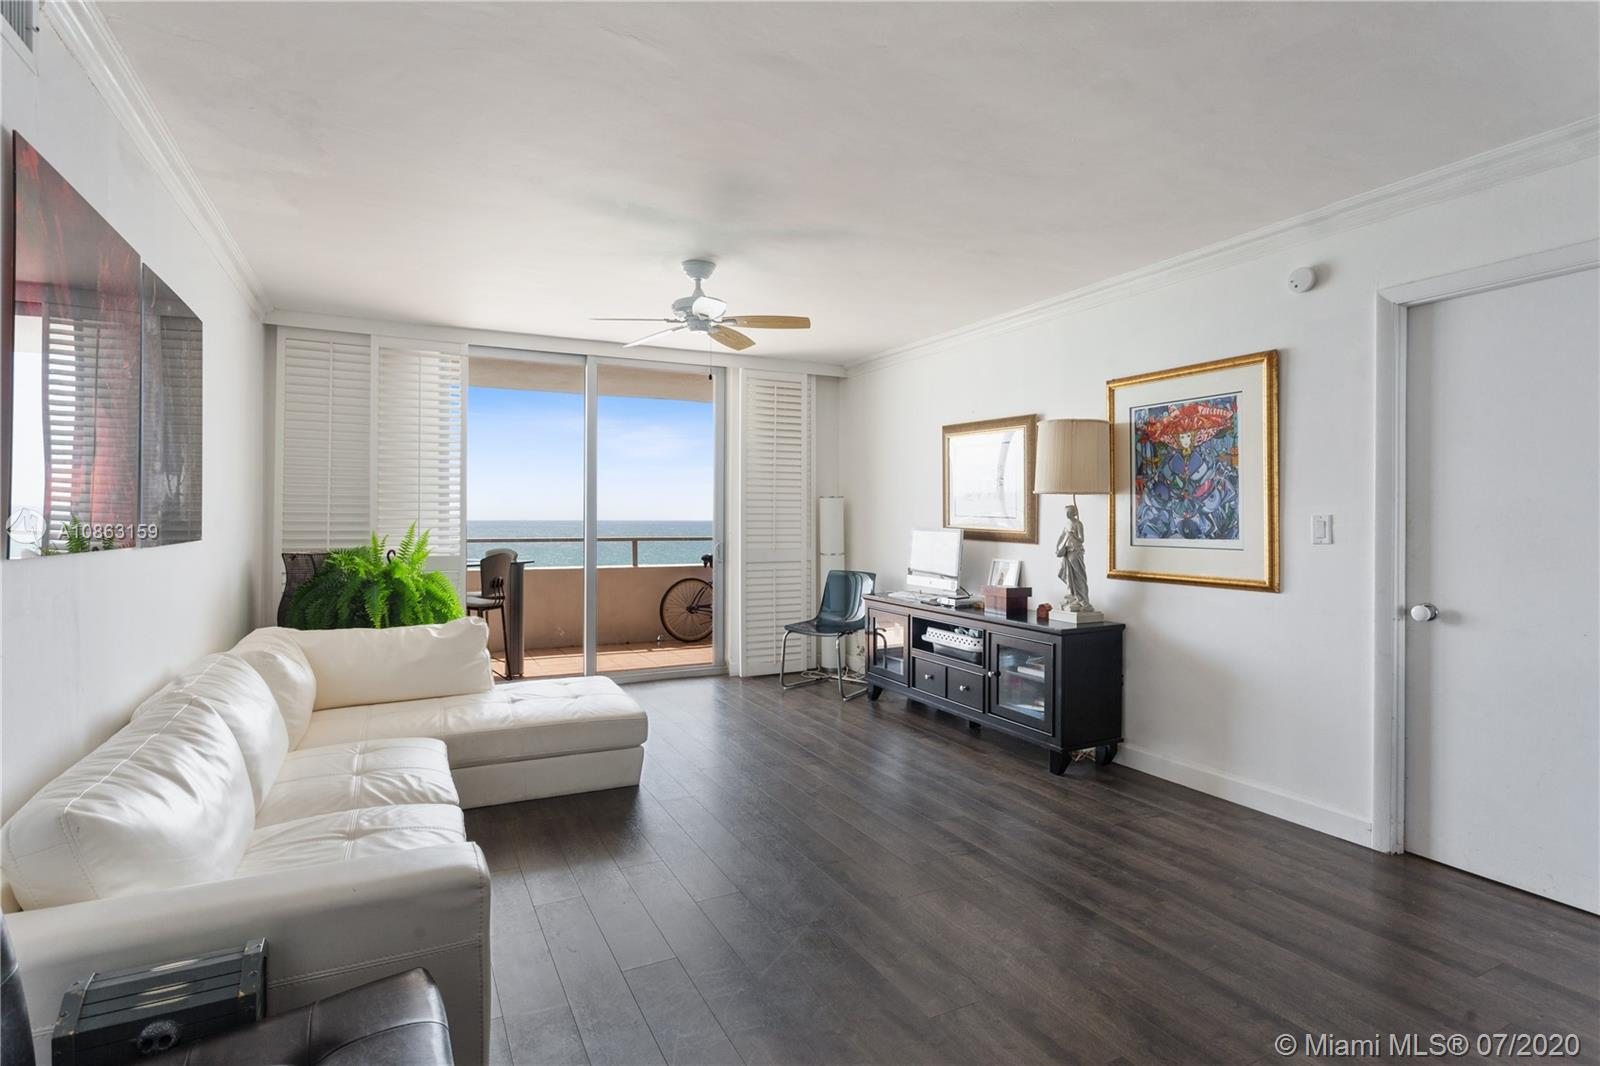 5555 Collins Ave # 12H, Miami Beach, Florida 33140, 2 Bedrooms Bedrooms, ,2 BathroomsBathrooms,Residential,For Sale,5555 Collins Ave # 12H,A10863159